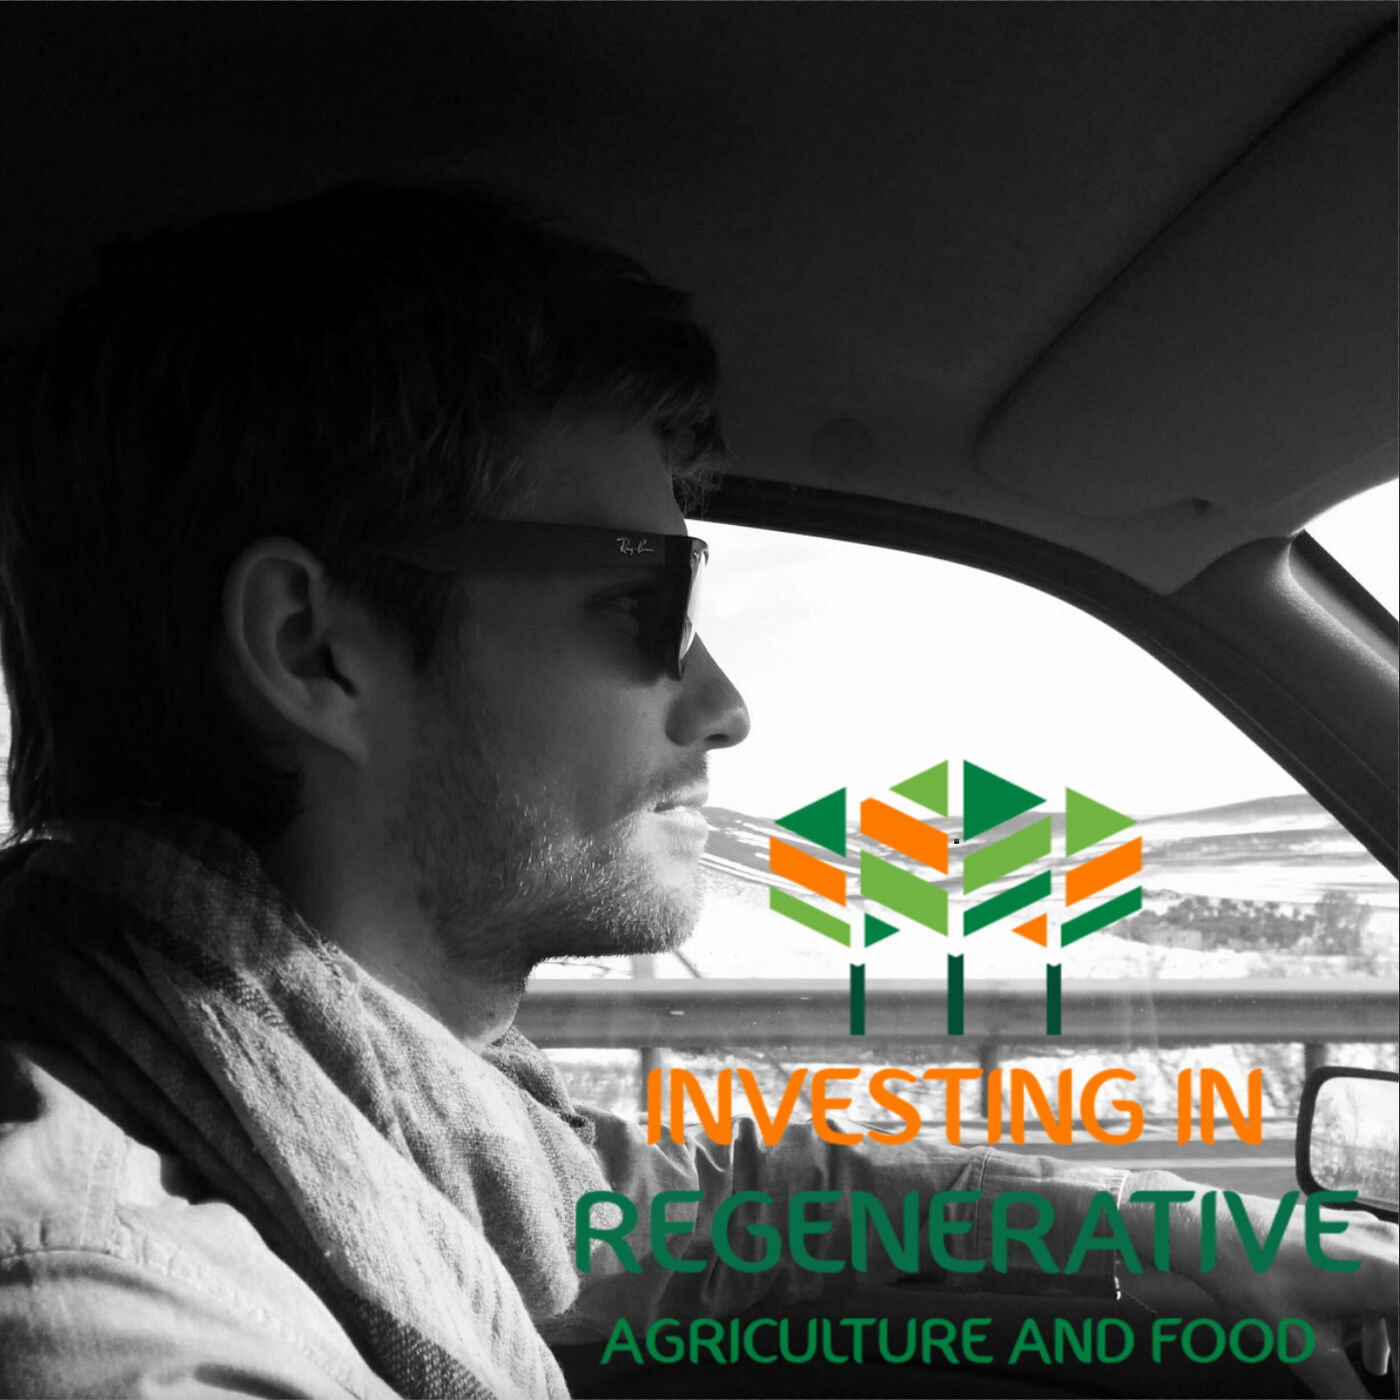 Investing in Regenerative Agriculture and Food